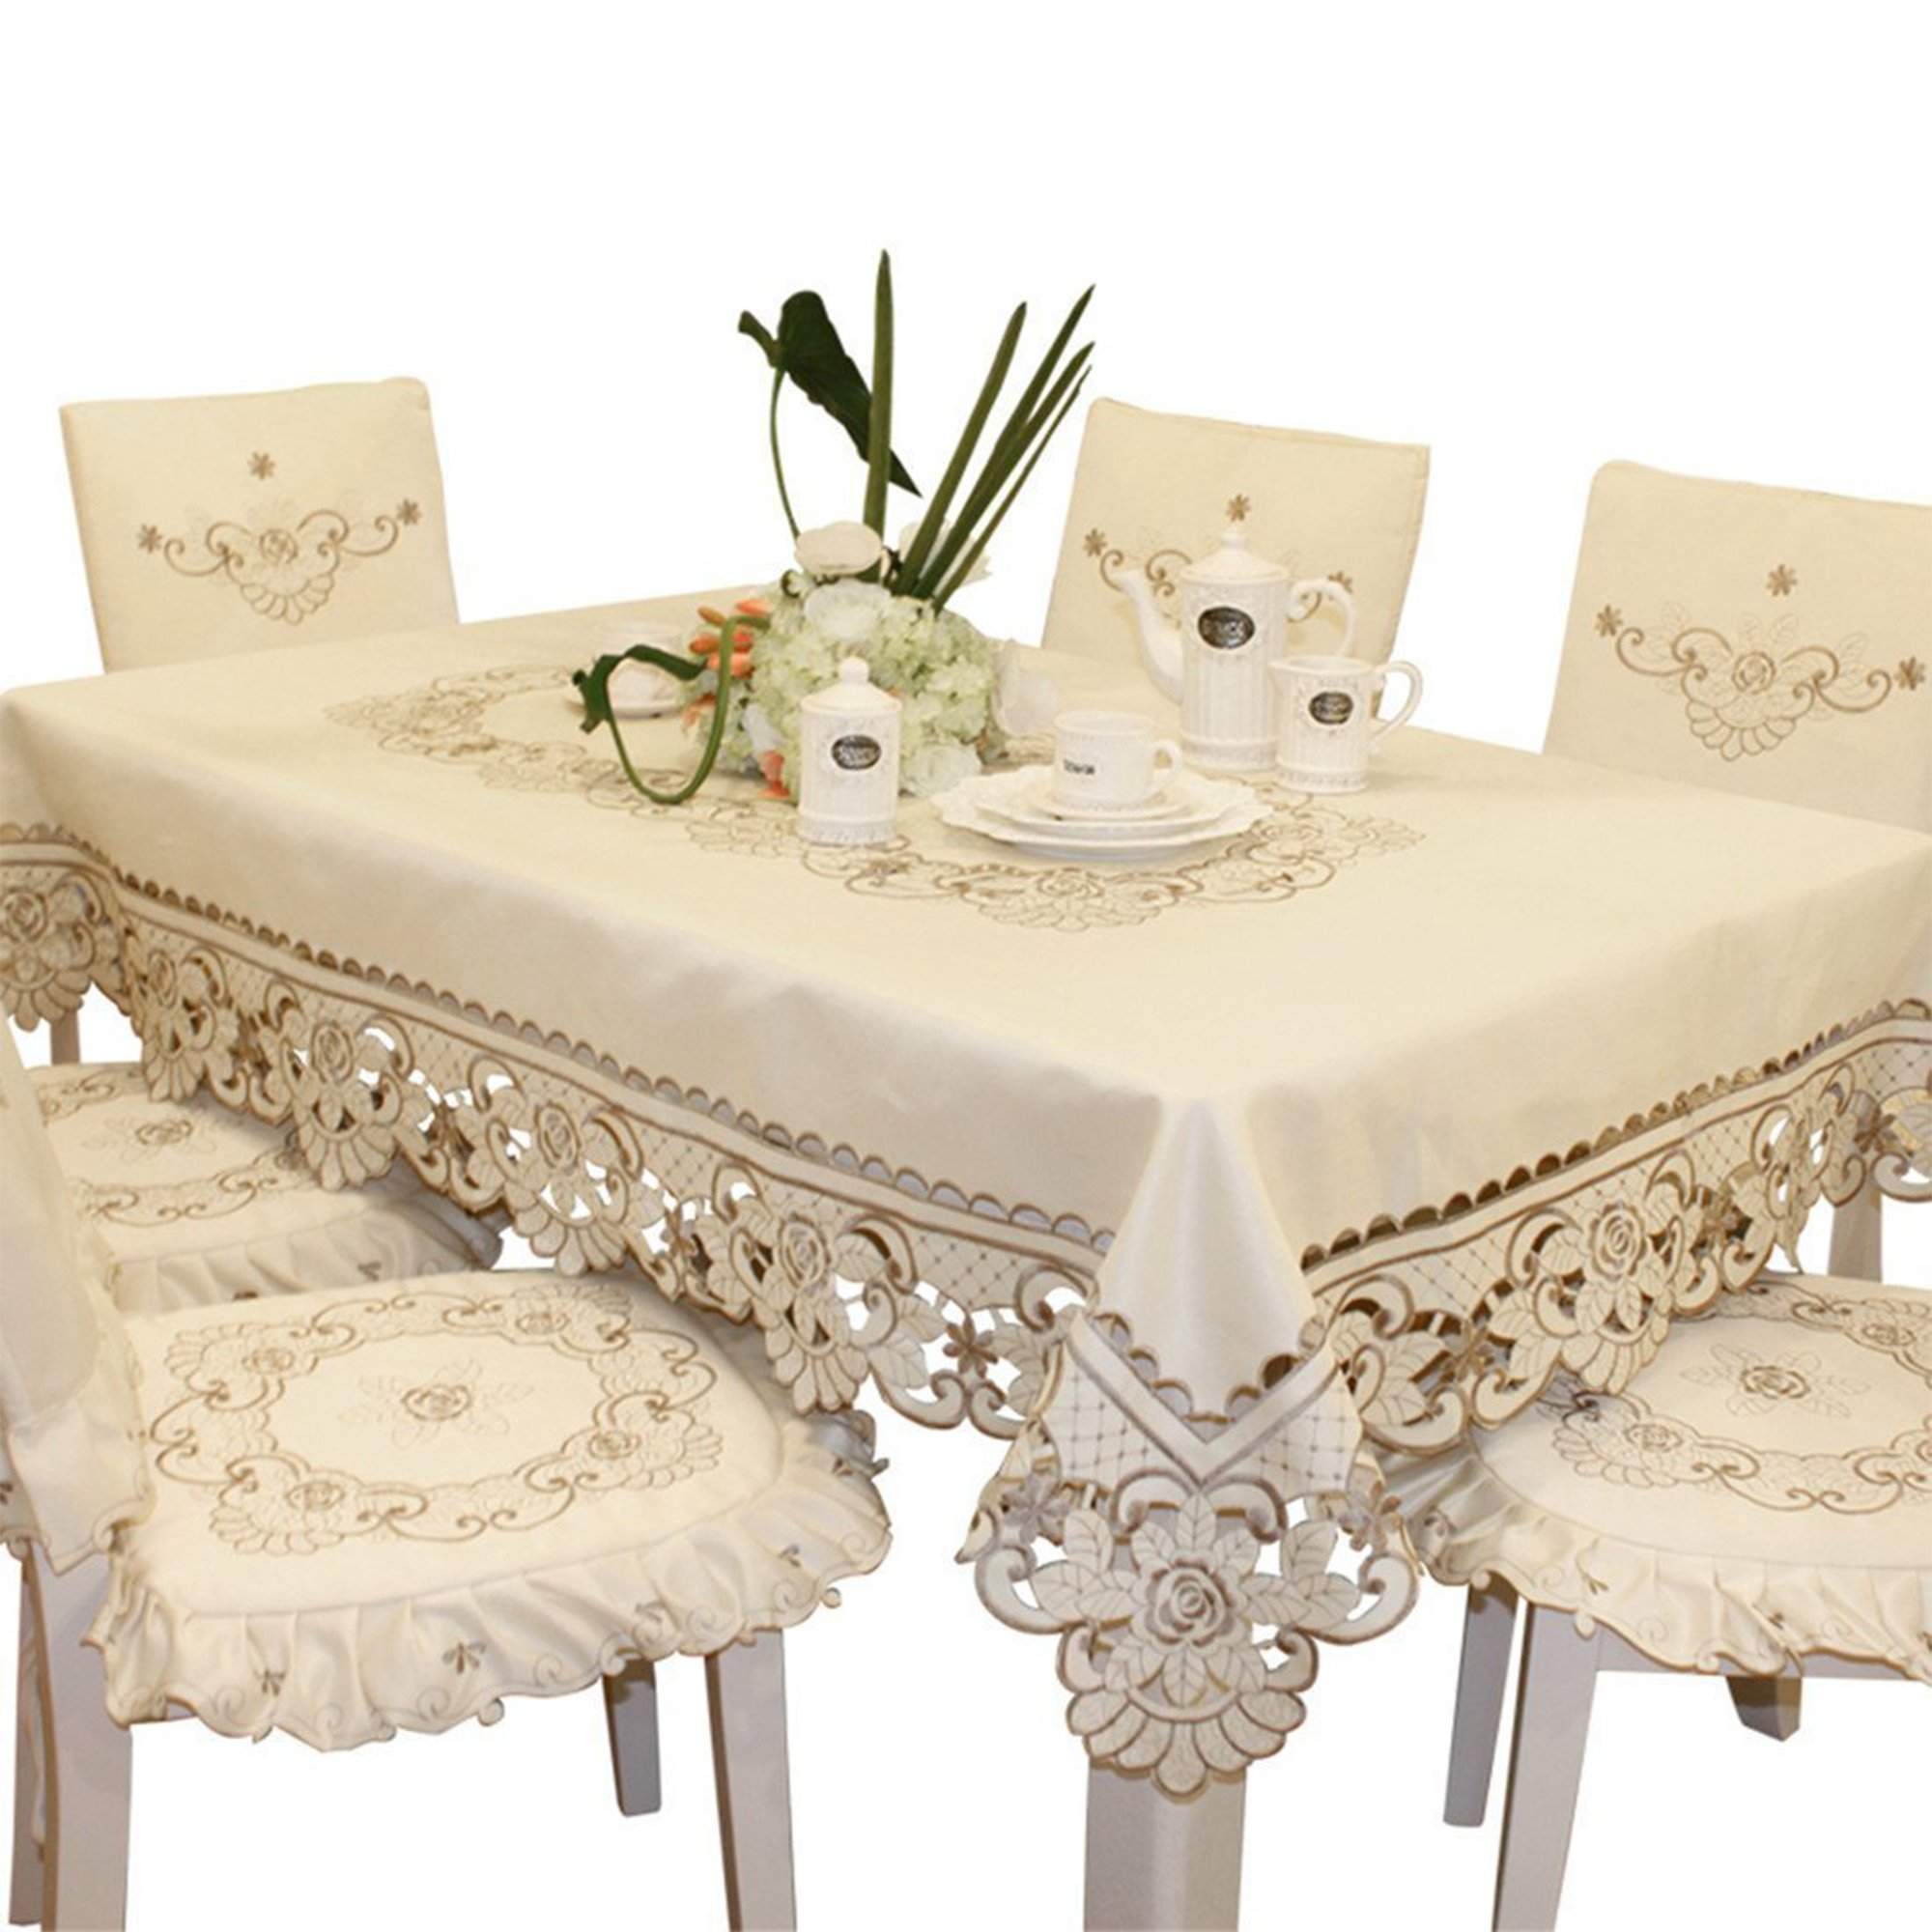 BeautiLife Luxury Cutwork Tablecloth Handmade Embroidery Floral Jacquard Table Cover for Wedding Party Home and Kitchen